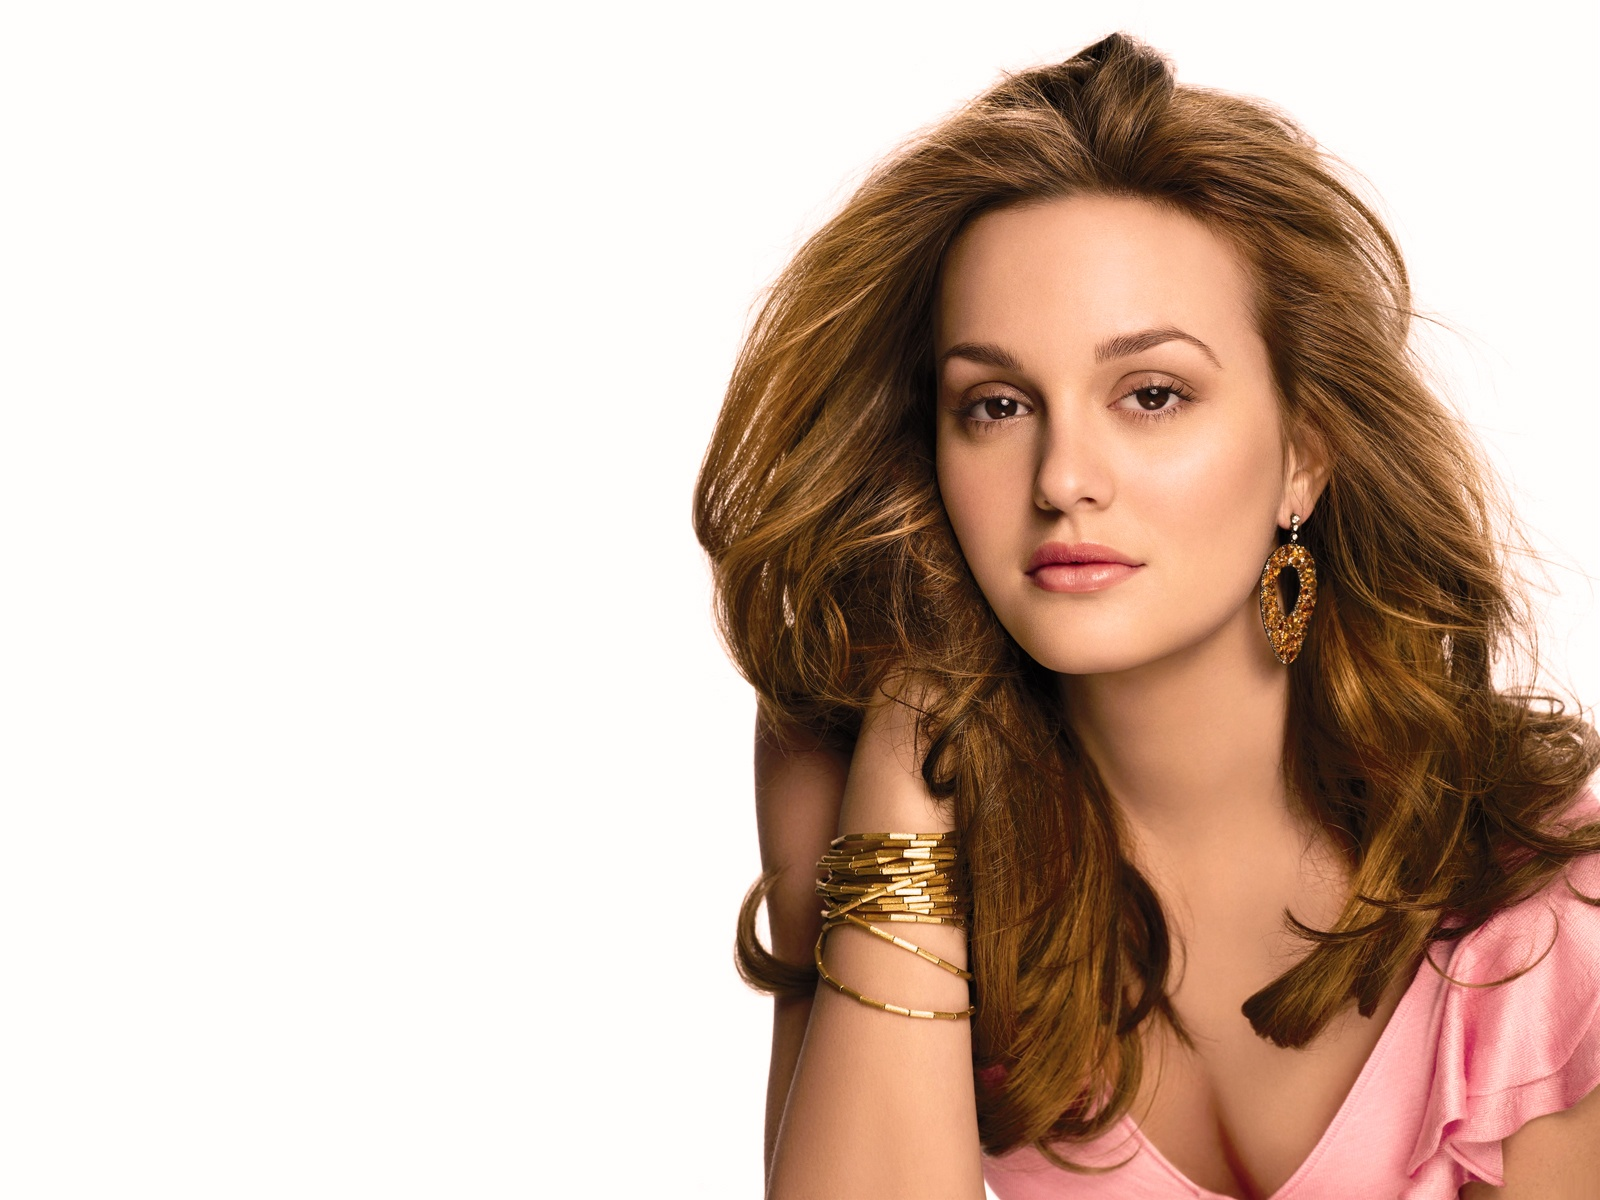 leighton meester wallpapers hd A3